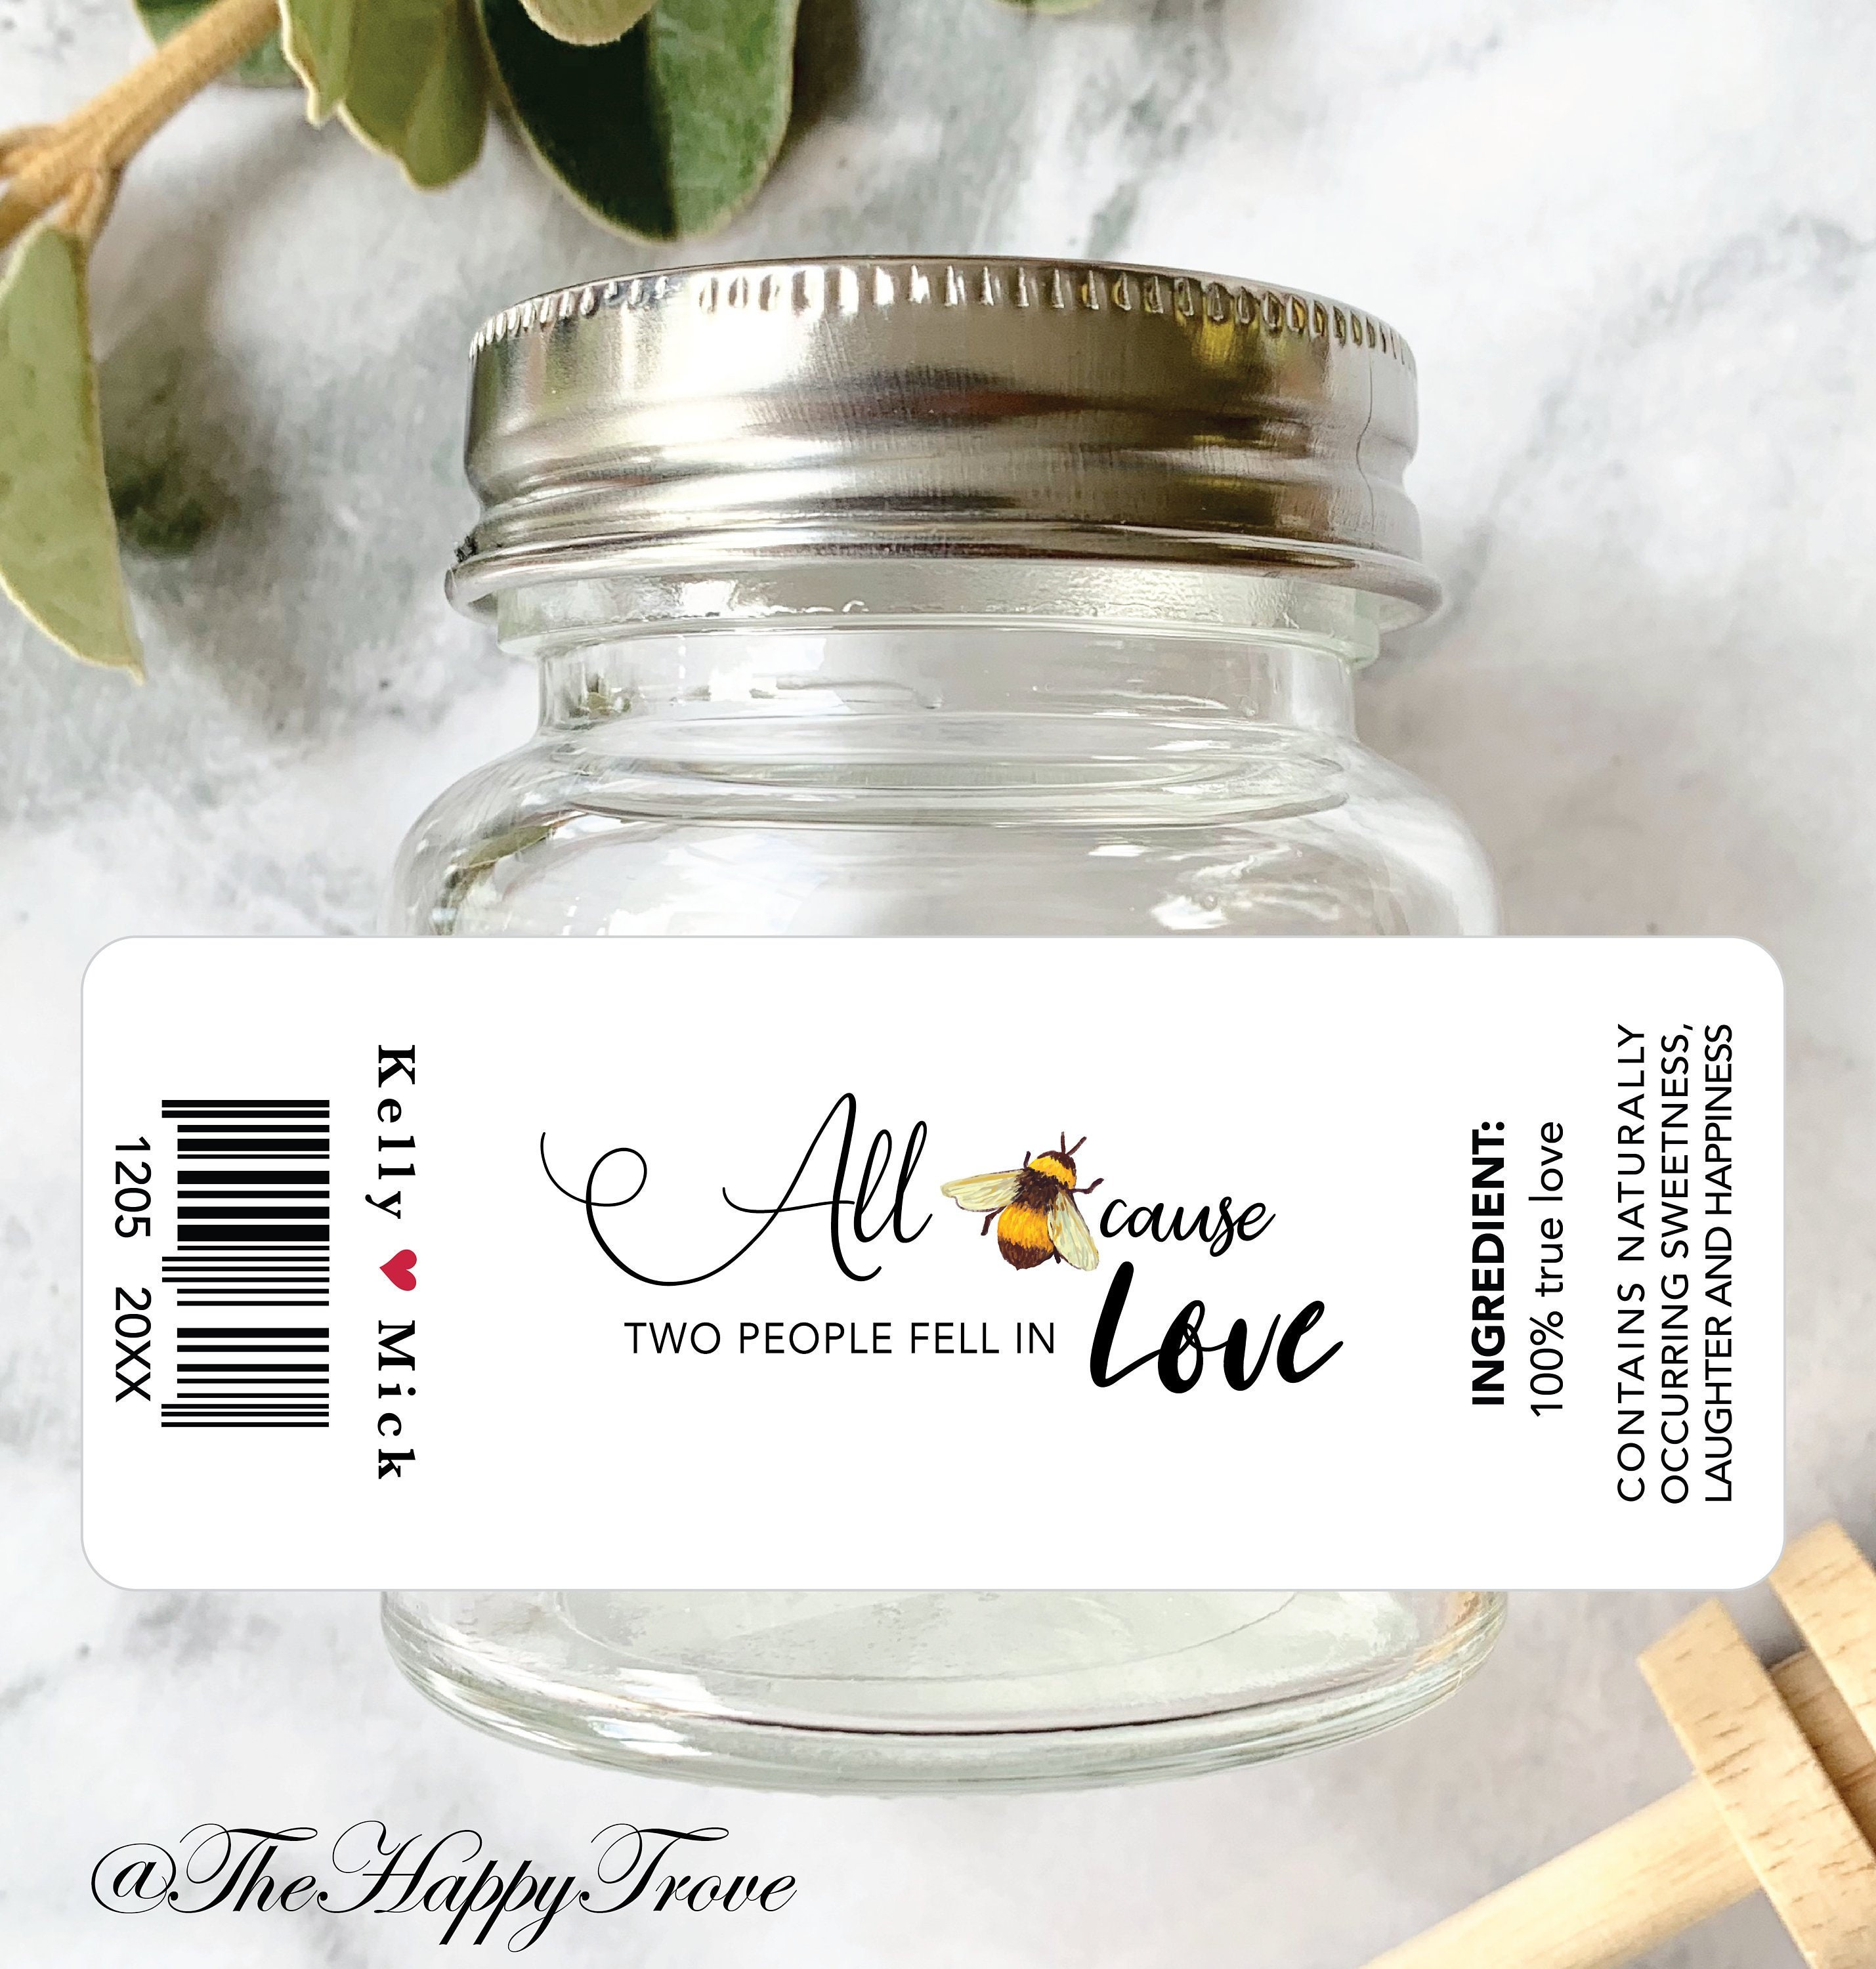 All beecause two people fell in love stickers for honey favors personalised stickers wedding favours bridal shower